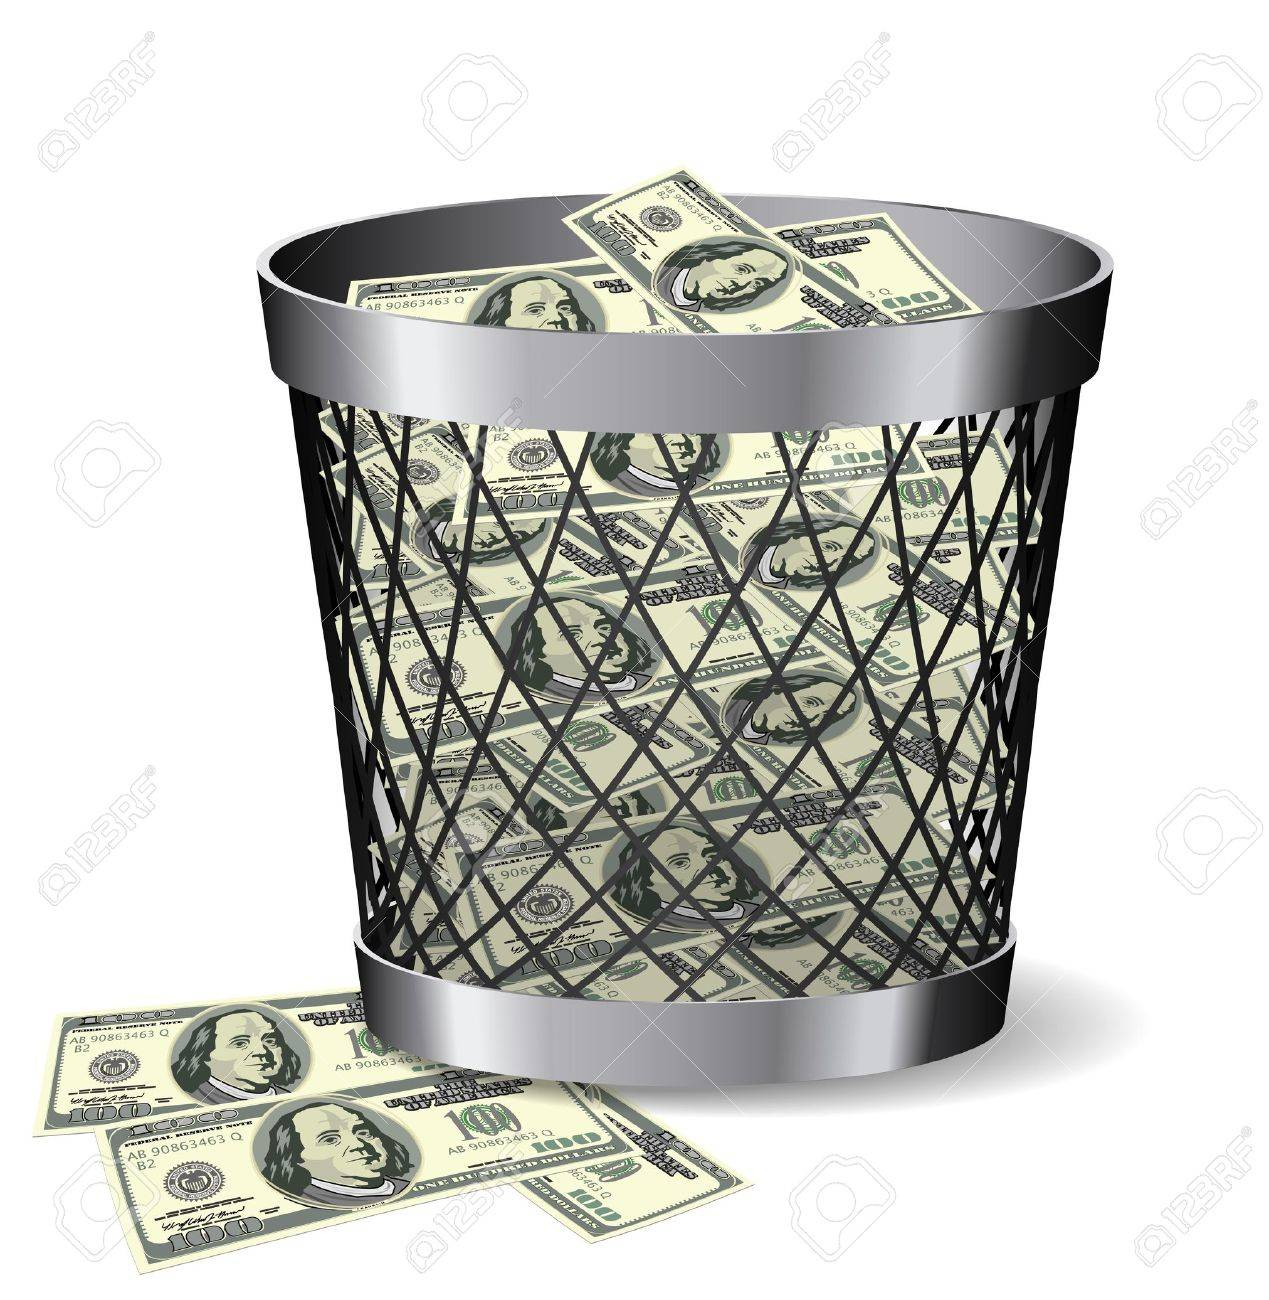 Steel paper bin with bills is on white background. Stock Vector - 18347906